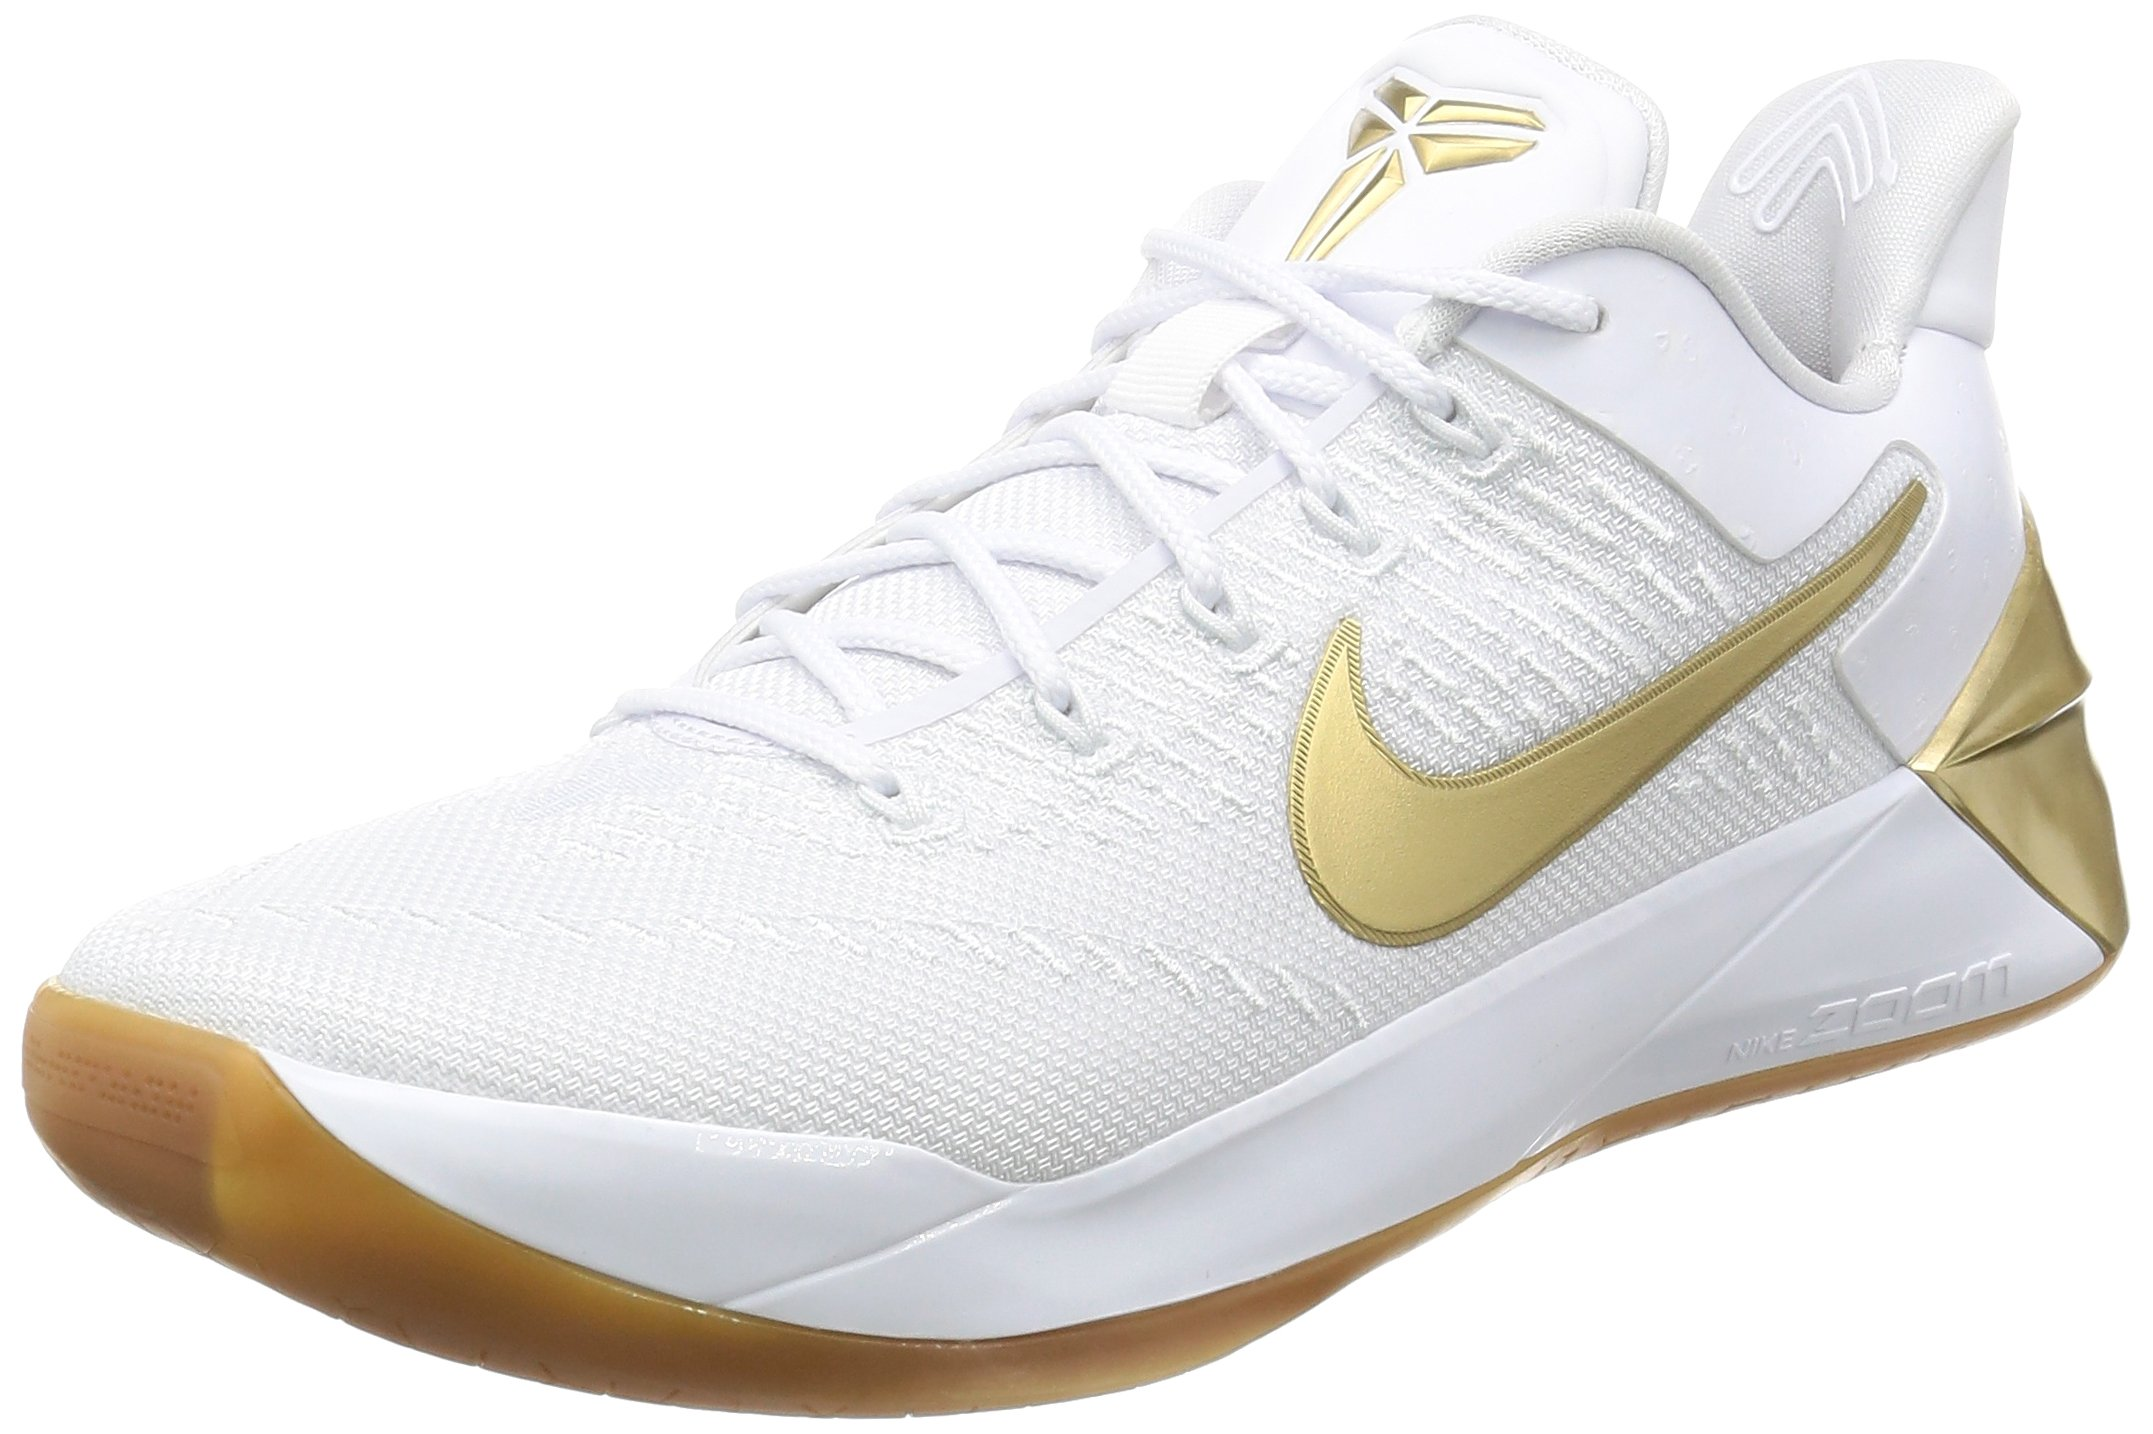 low priced 4cfa1 9088c Nike Mens Kobe A.D. Basketball Shoes White/Metallic Gold 852425-107 Size 9